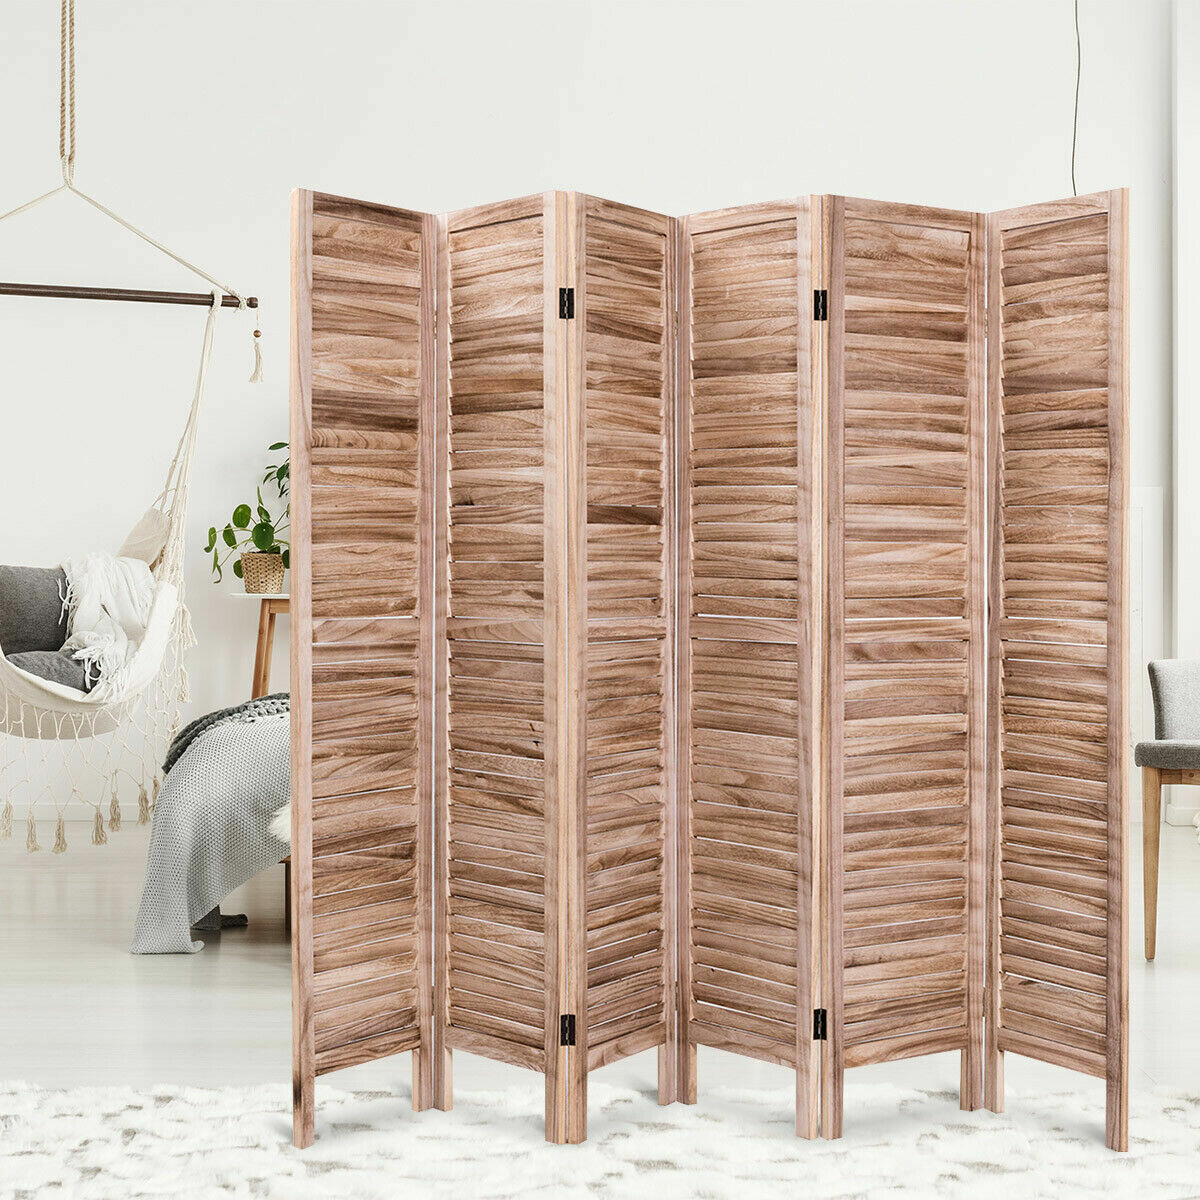 Stupendous Goku 6 Panel Room Divider Download Free Architecture Designs Embacsunscenecom